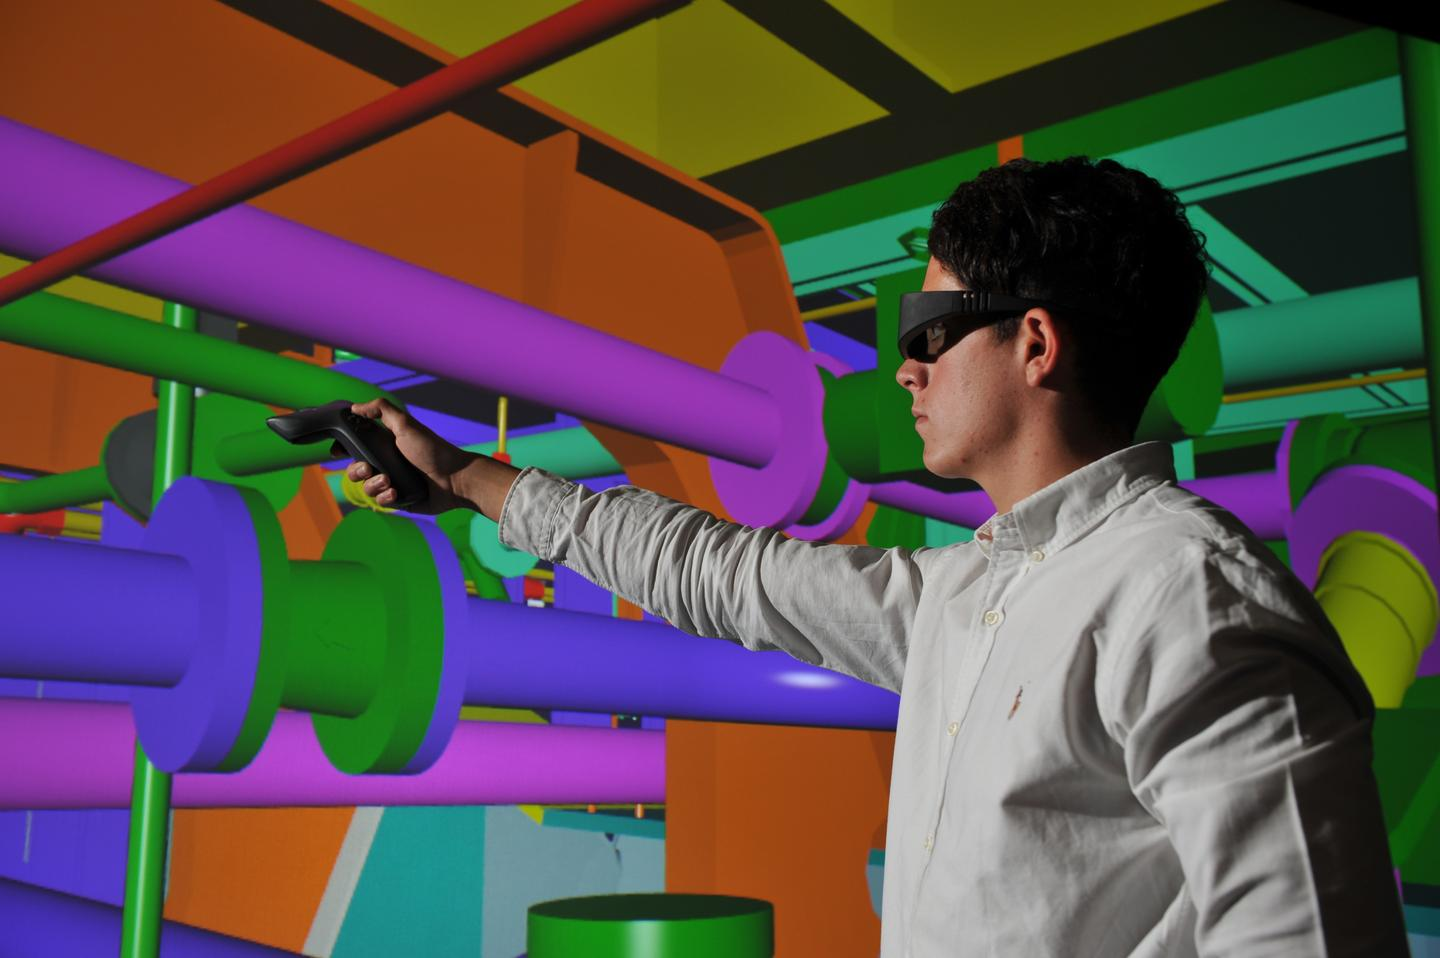 The BAE VR system is based on laser tracking and an interactive wand